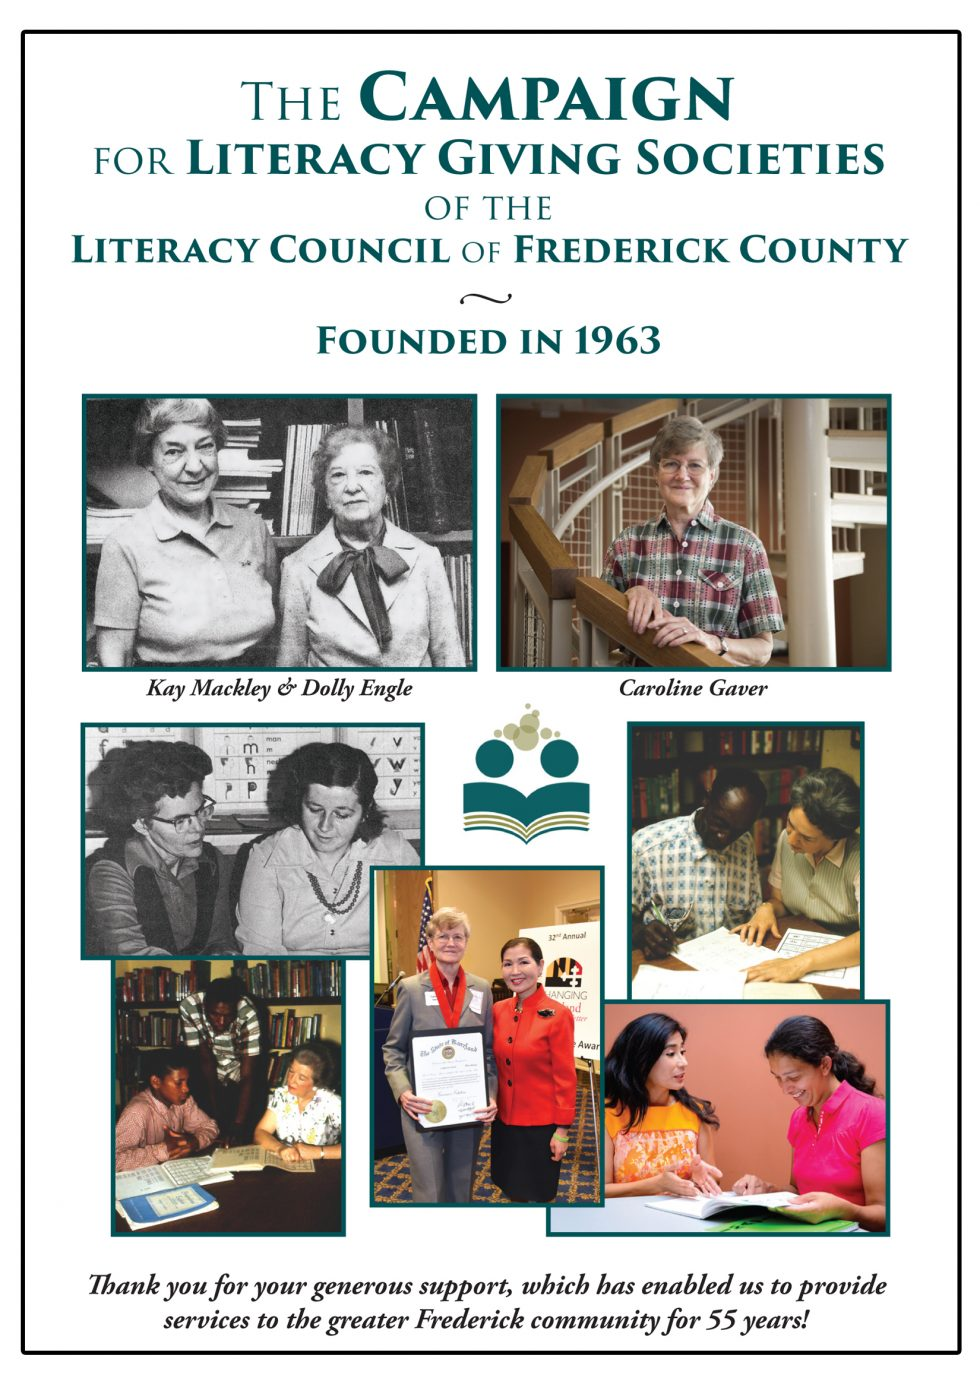 Giving Societies of the Literacy Council of Frederick County Announced at Special Reception